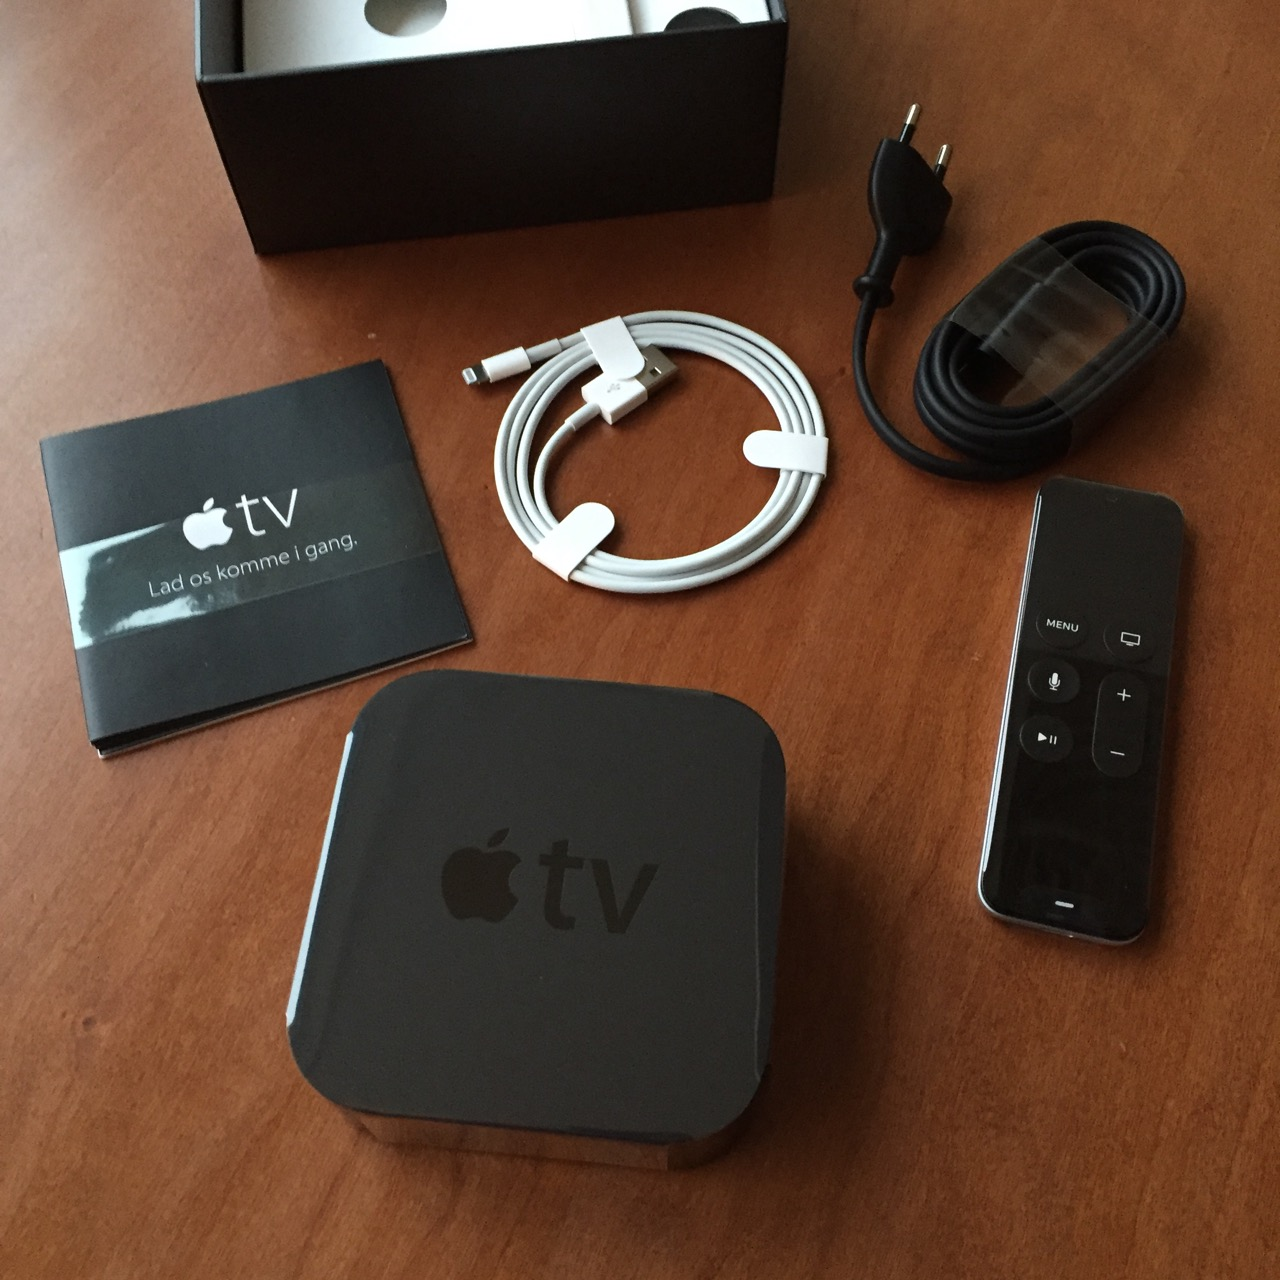 Apple TV MaxiMac